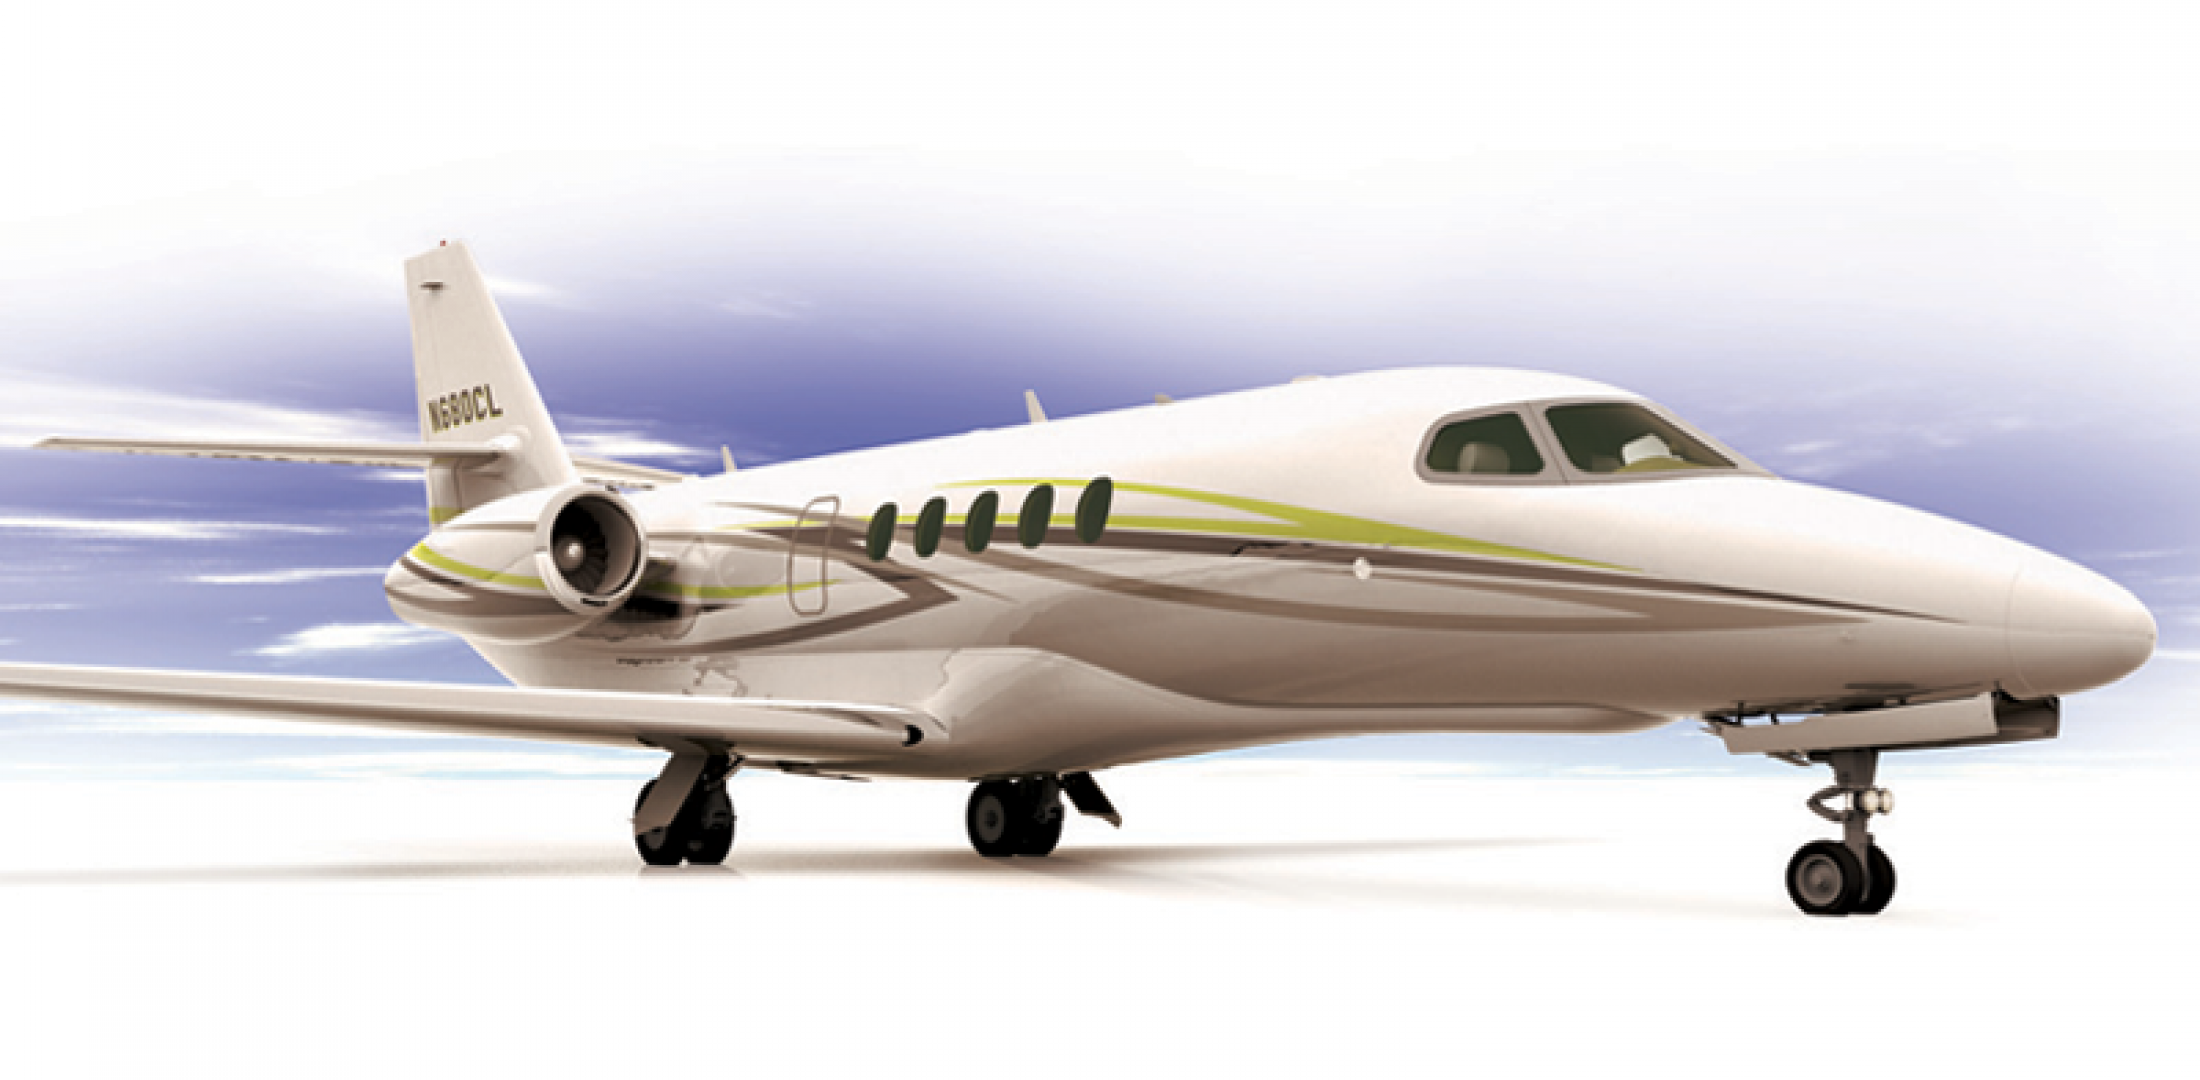 The new Citation Latitude essentially mates a new, standup fuselage and Garmin G